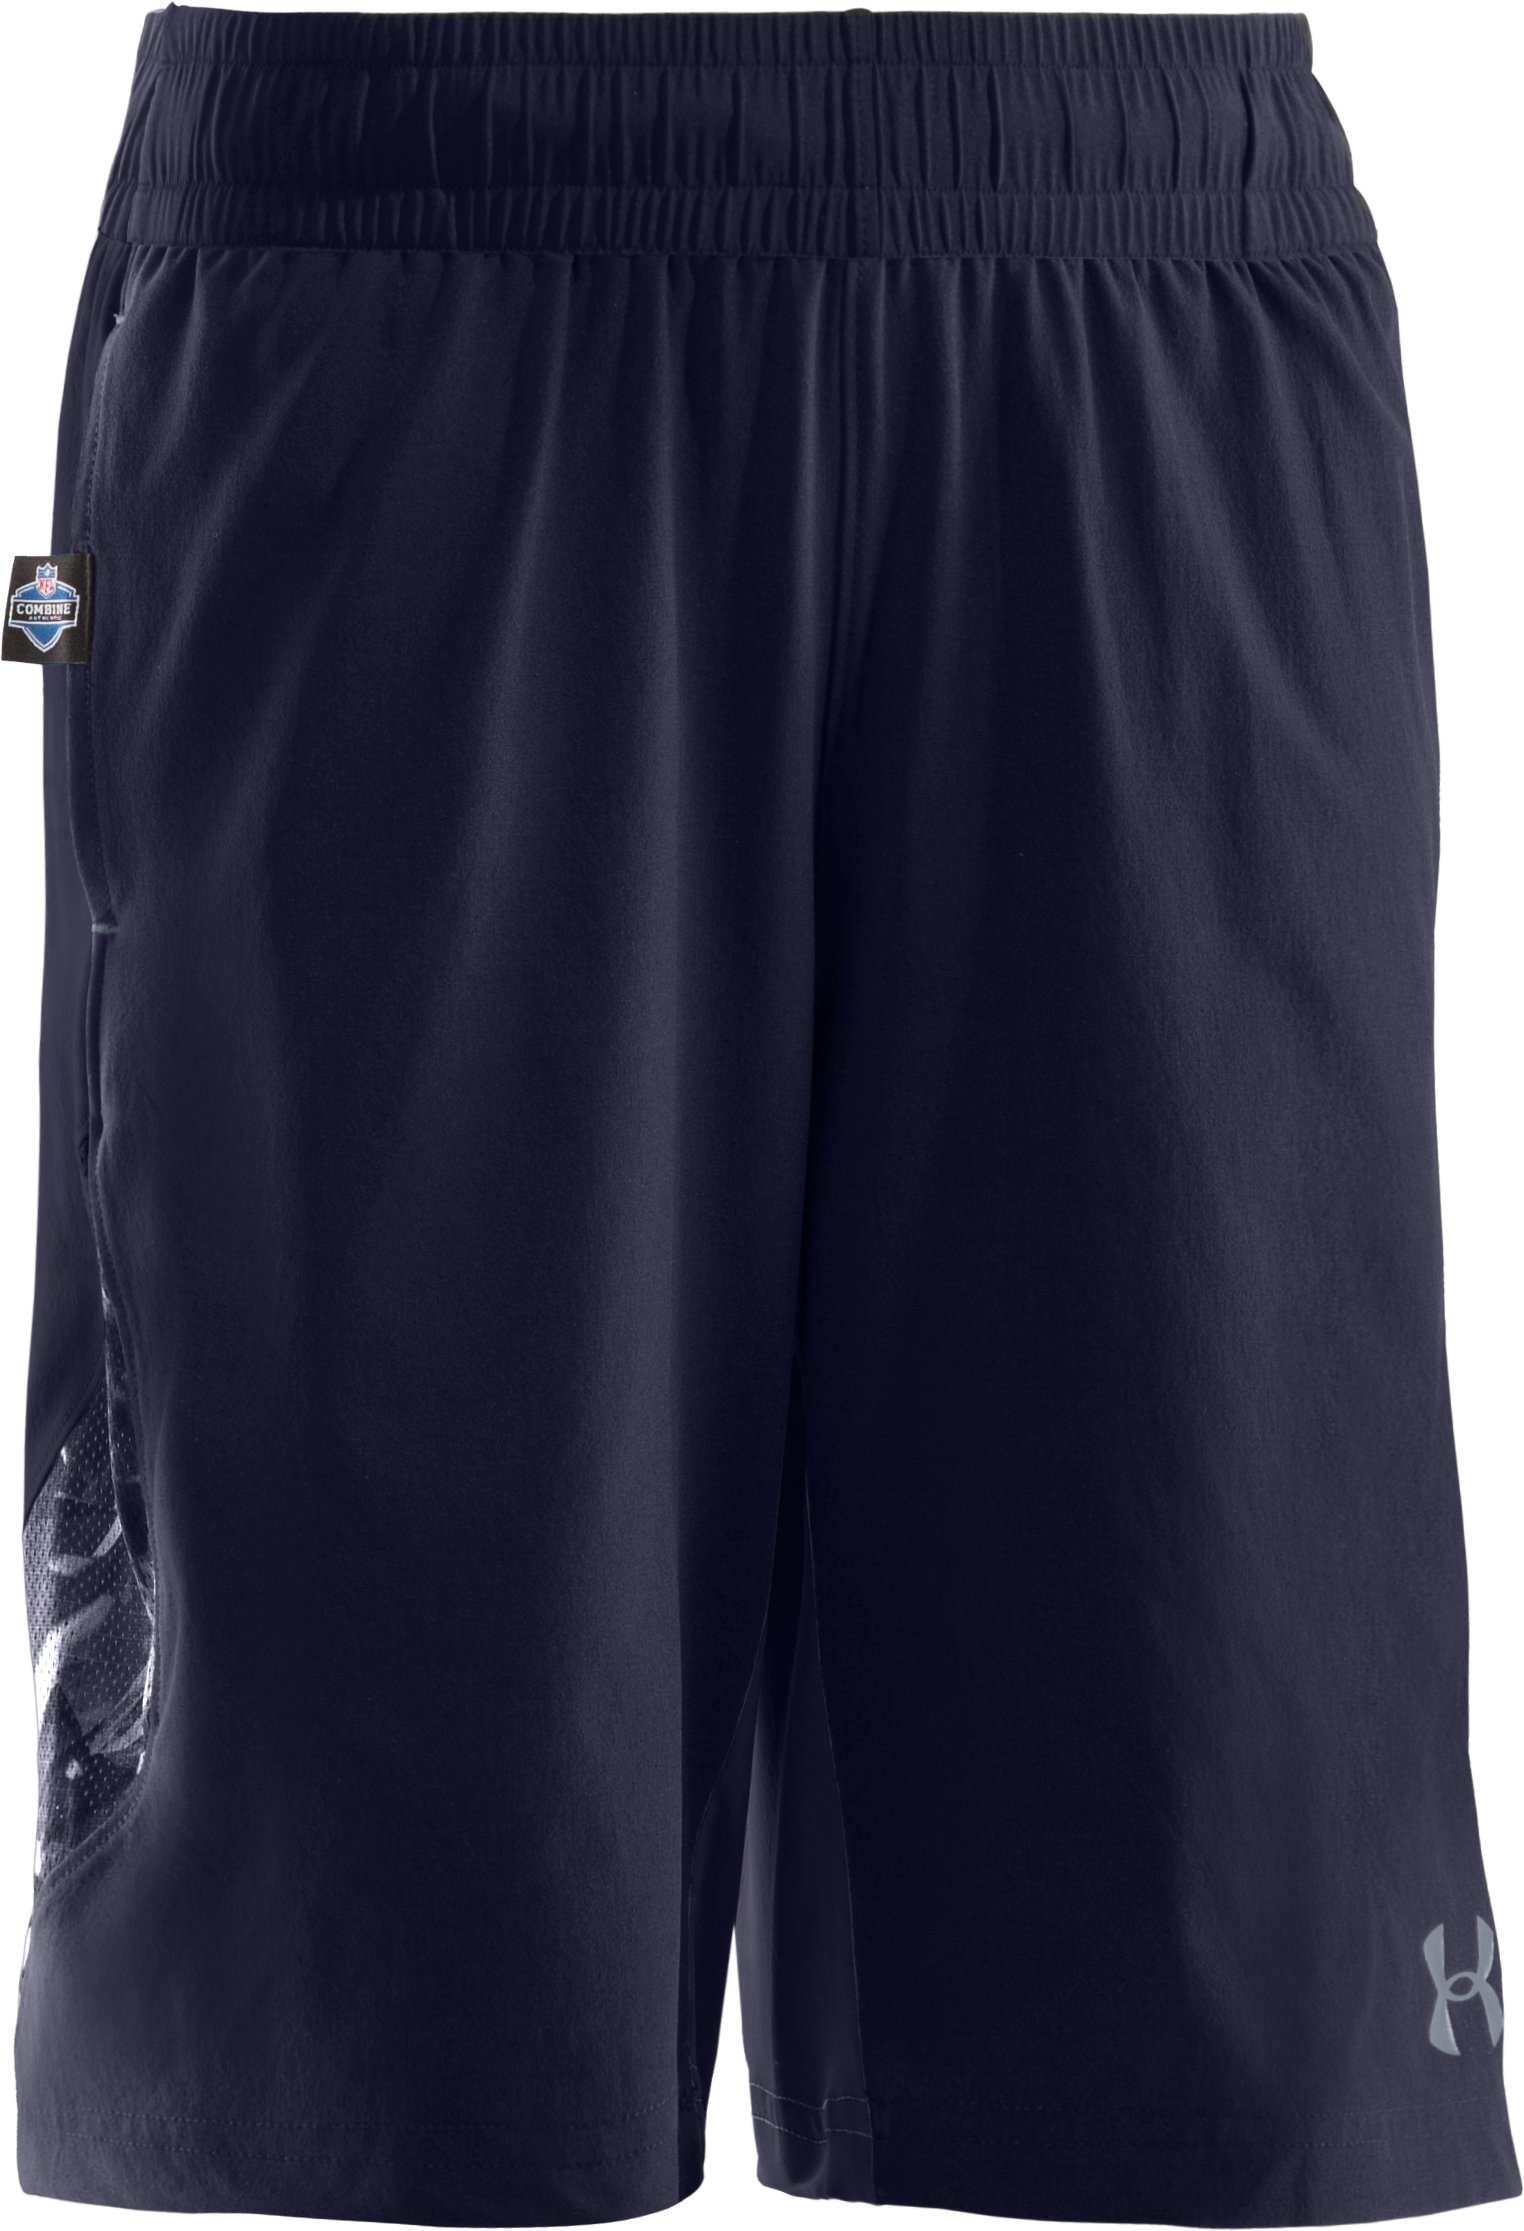 Boys' NFL Combine Authentic Shorts, Midnight Navy, zoomed image